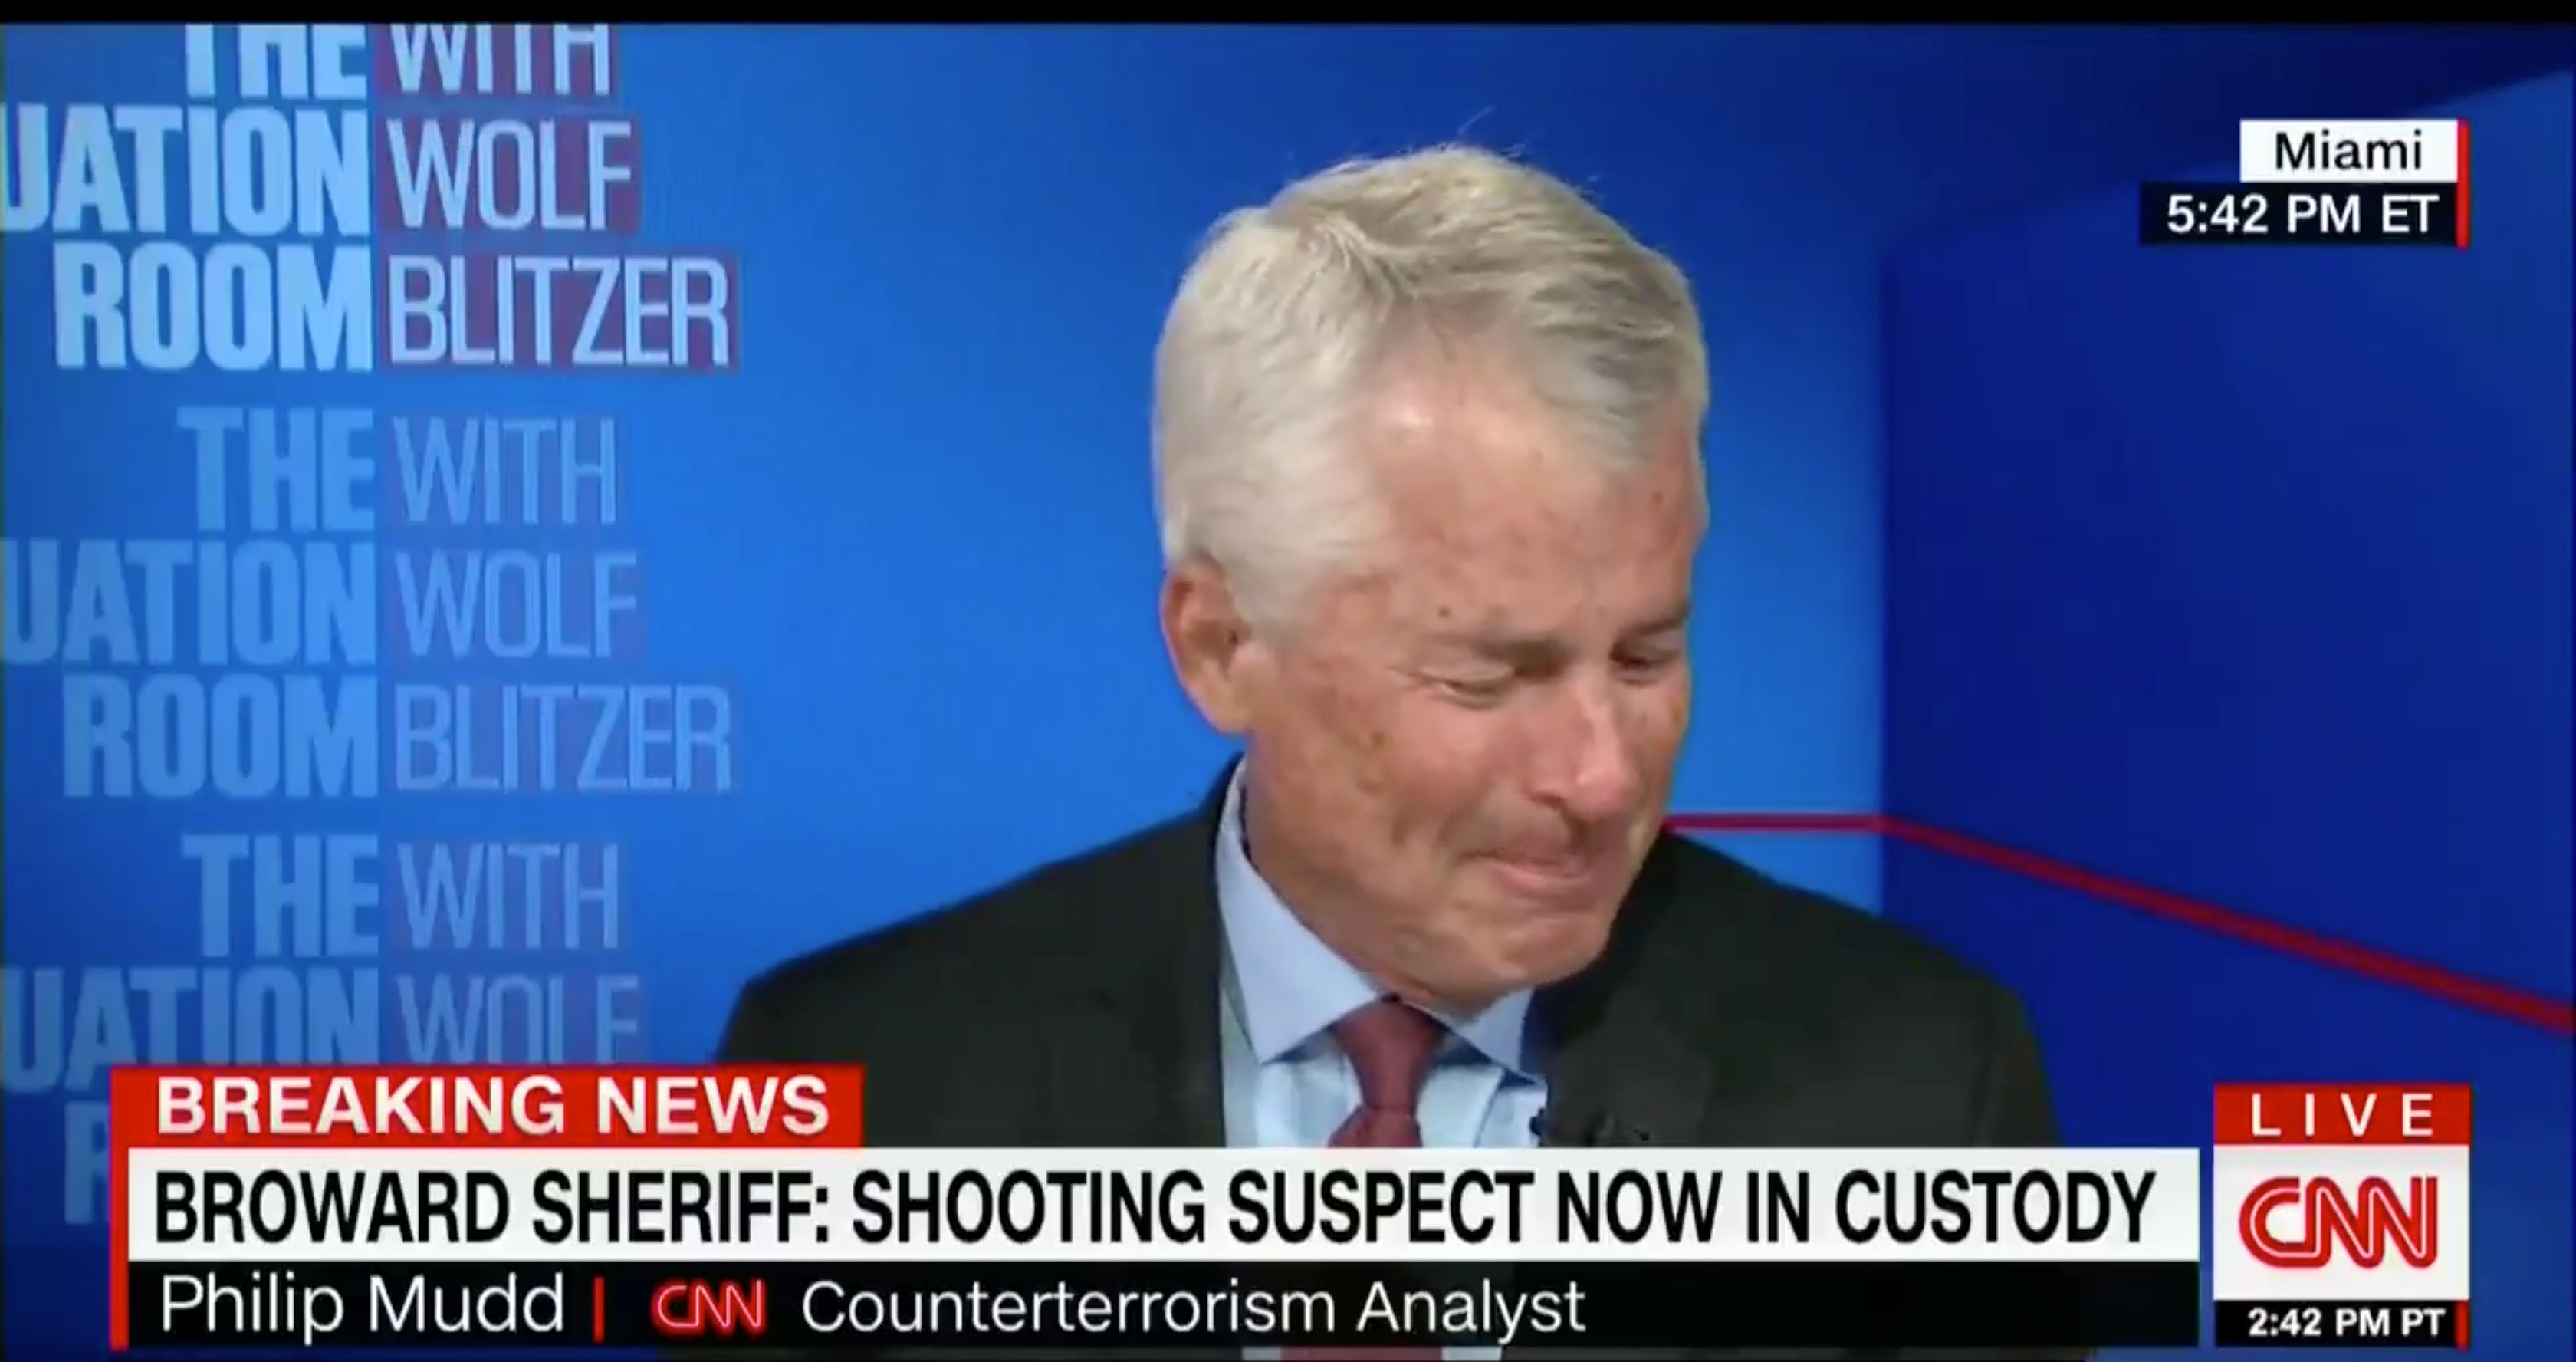 CNN Contributor Philip Mudd breaks down during a segment on the Florida school shooting